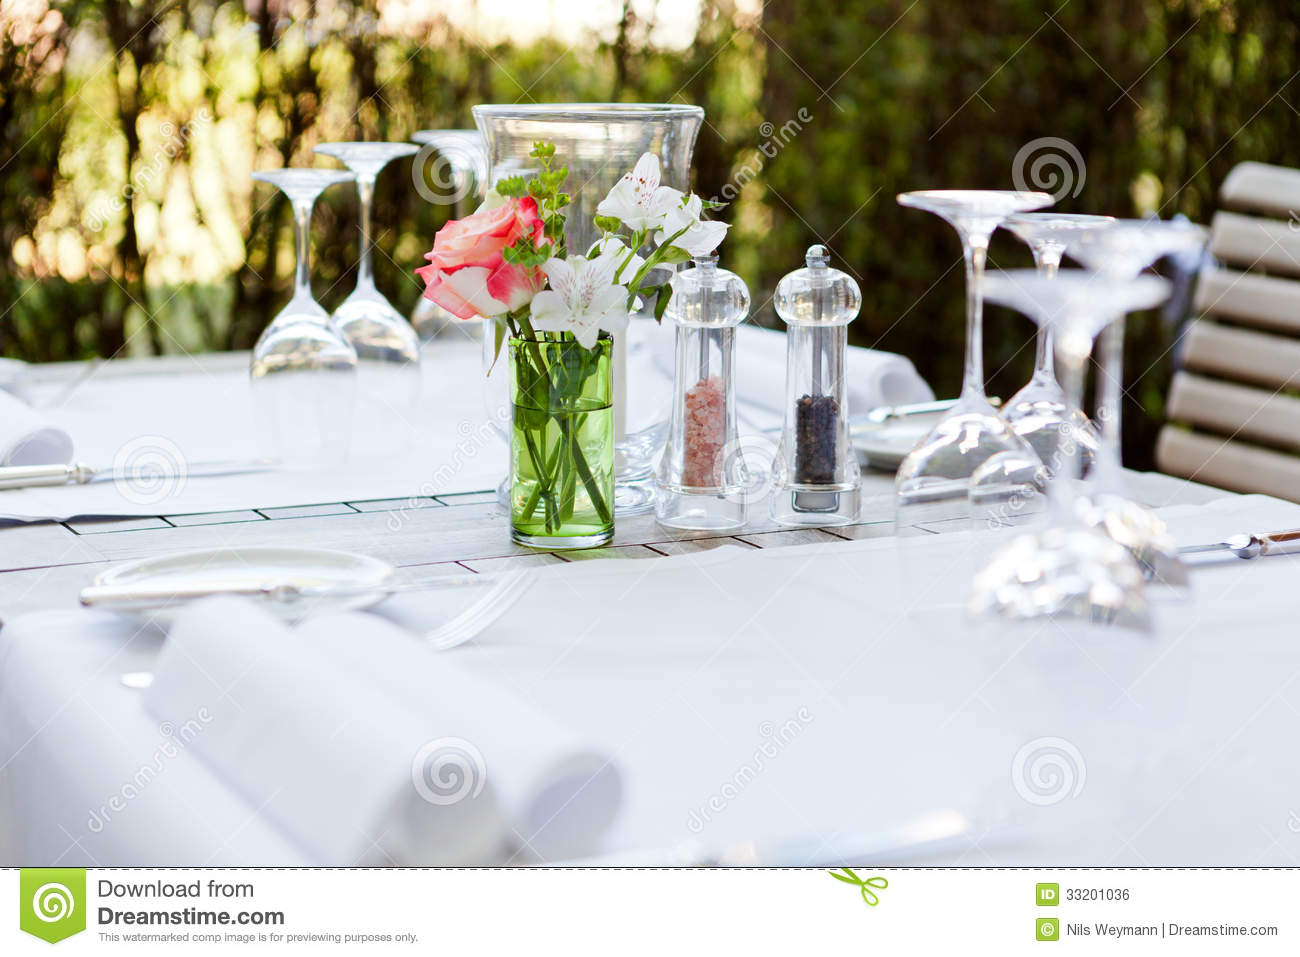 Table in restaurant tableware glass banquet summer Royalty Free Stock Image & Table In Restaurant Tableware Glass Banquet Summer Stock Photo ...